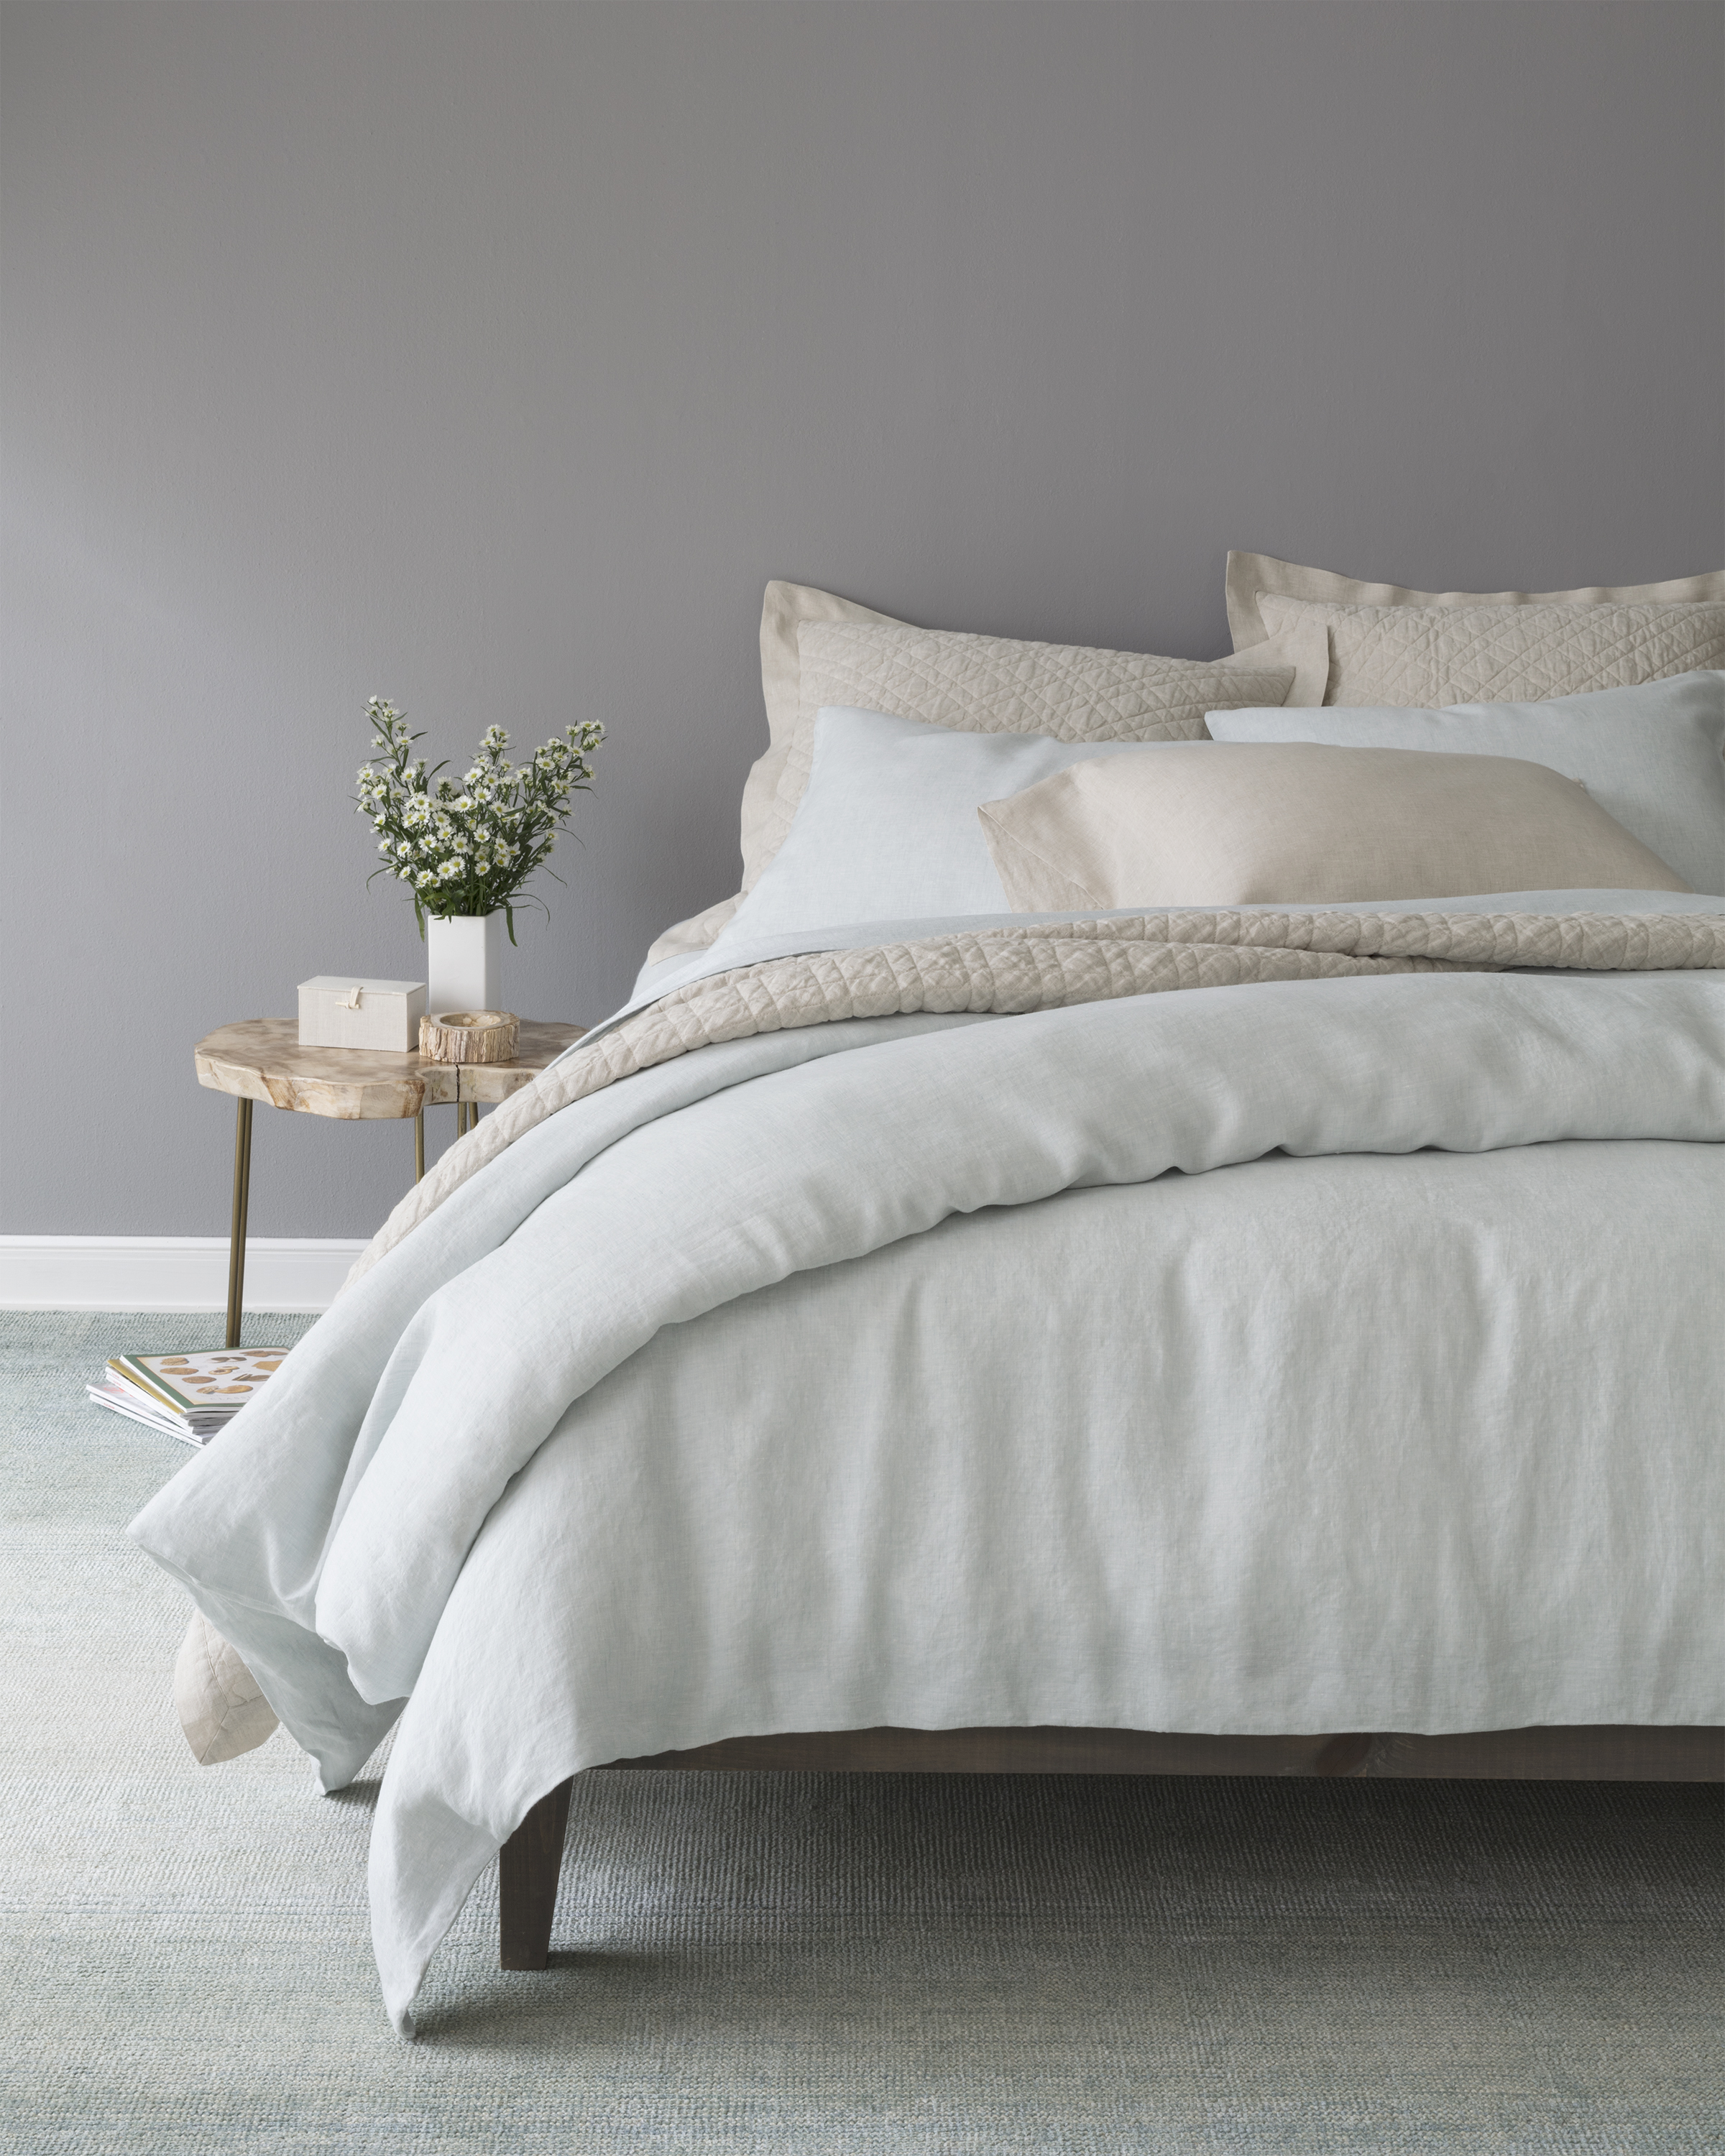 Introducing: Our New Love Linen Collection   Annie Selke's Fresh American Style